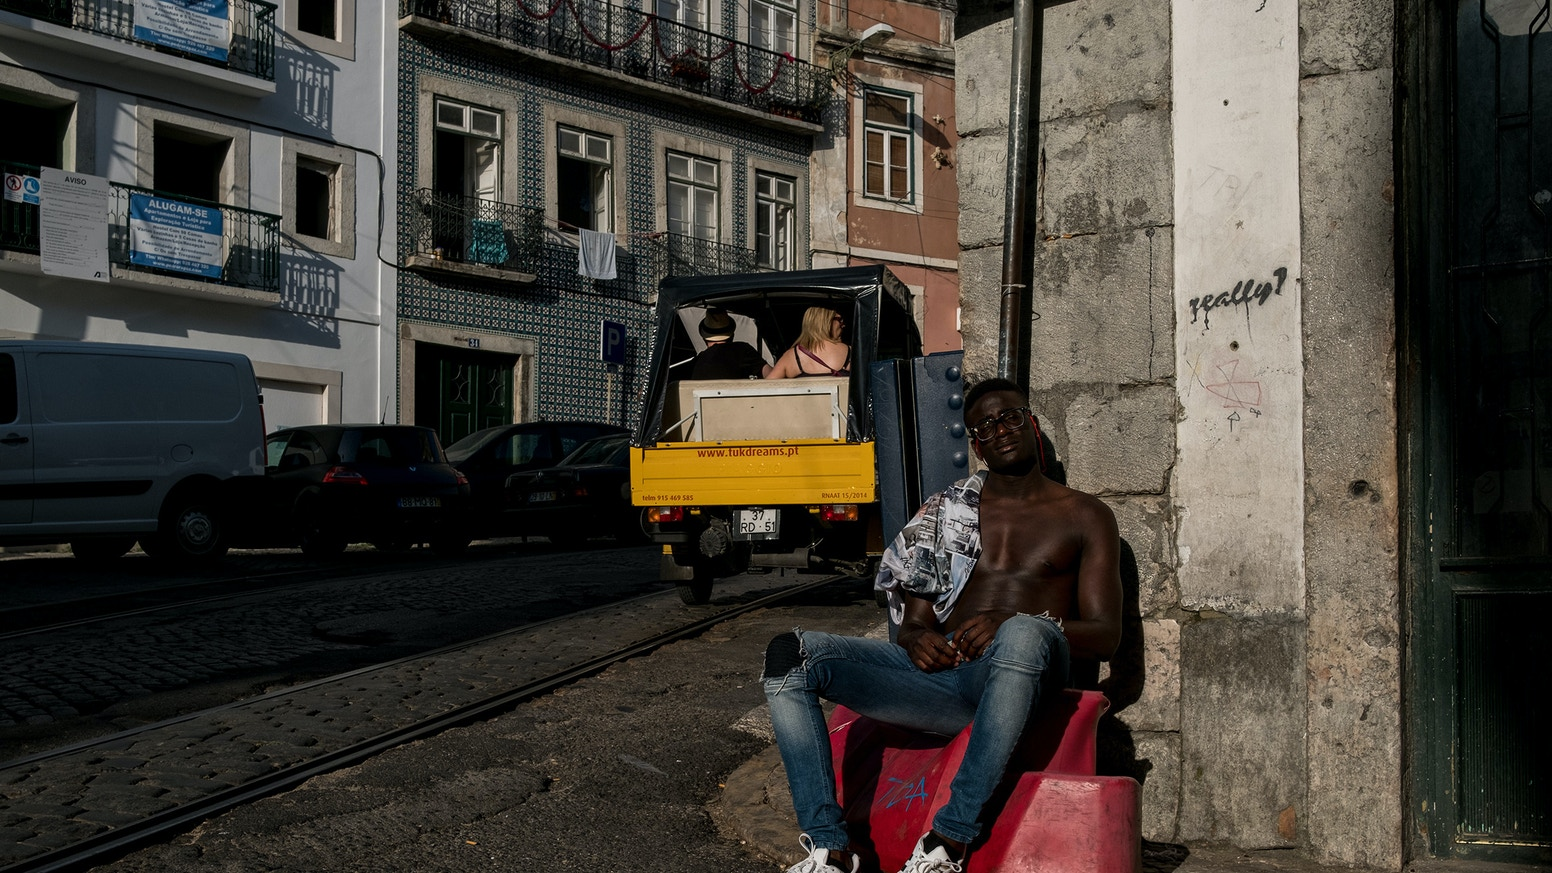 A street photography/documentary project that examines the European society and studies its essence.